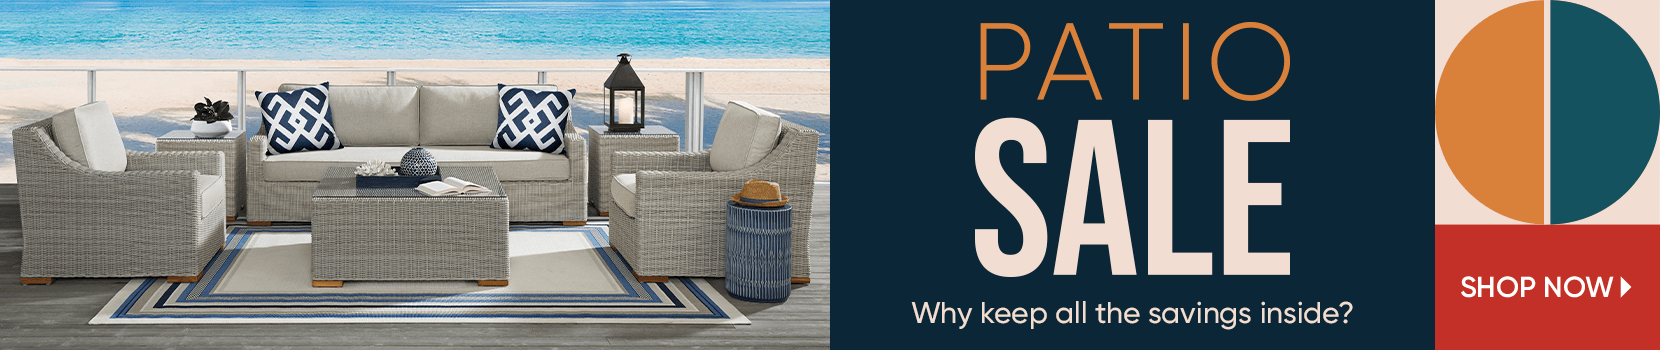 patio sale. why keep all the savings inside. shop now